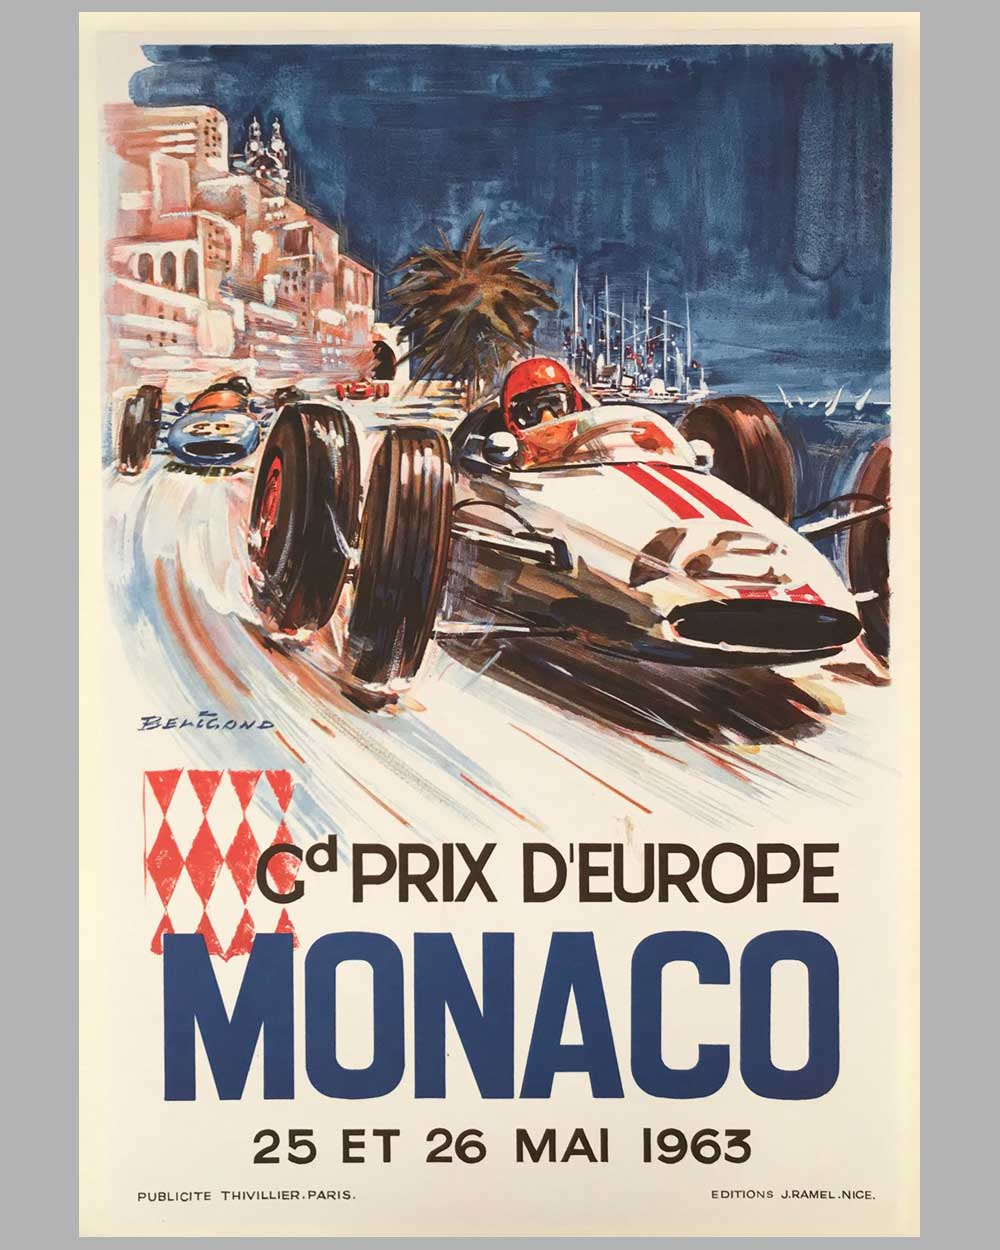 1963 Grand Prix of Monaco poster by Beligond